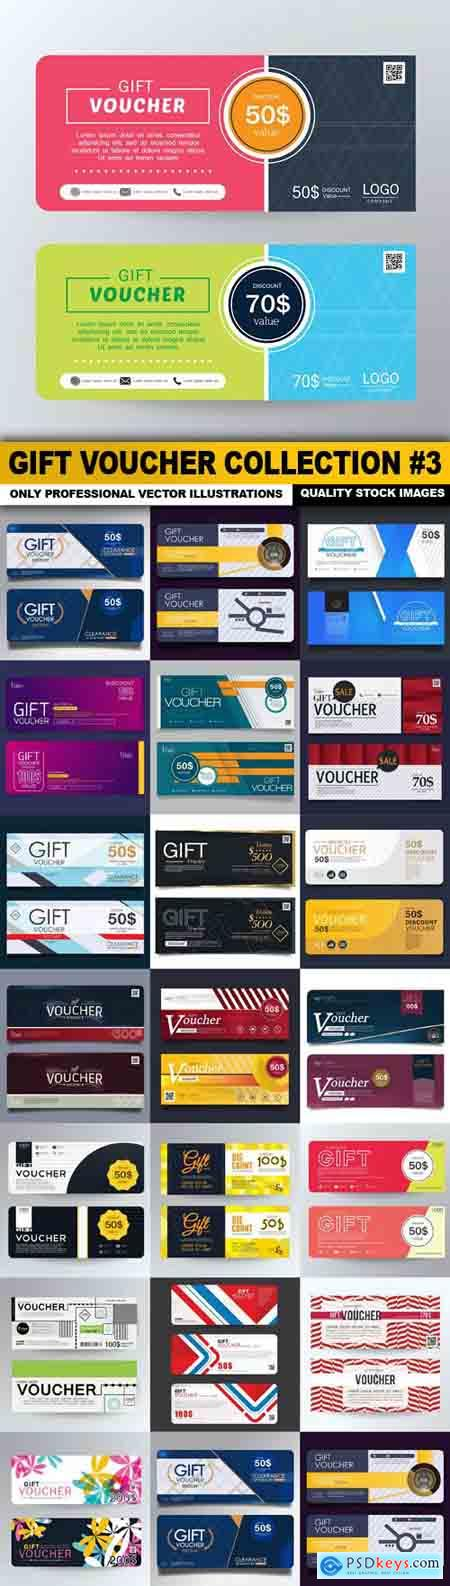 Gift Voucher Collection #3 - 20 Vector